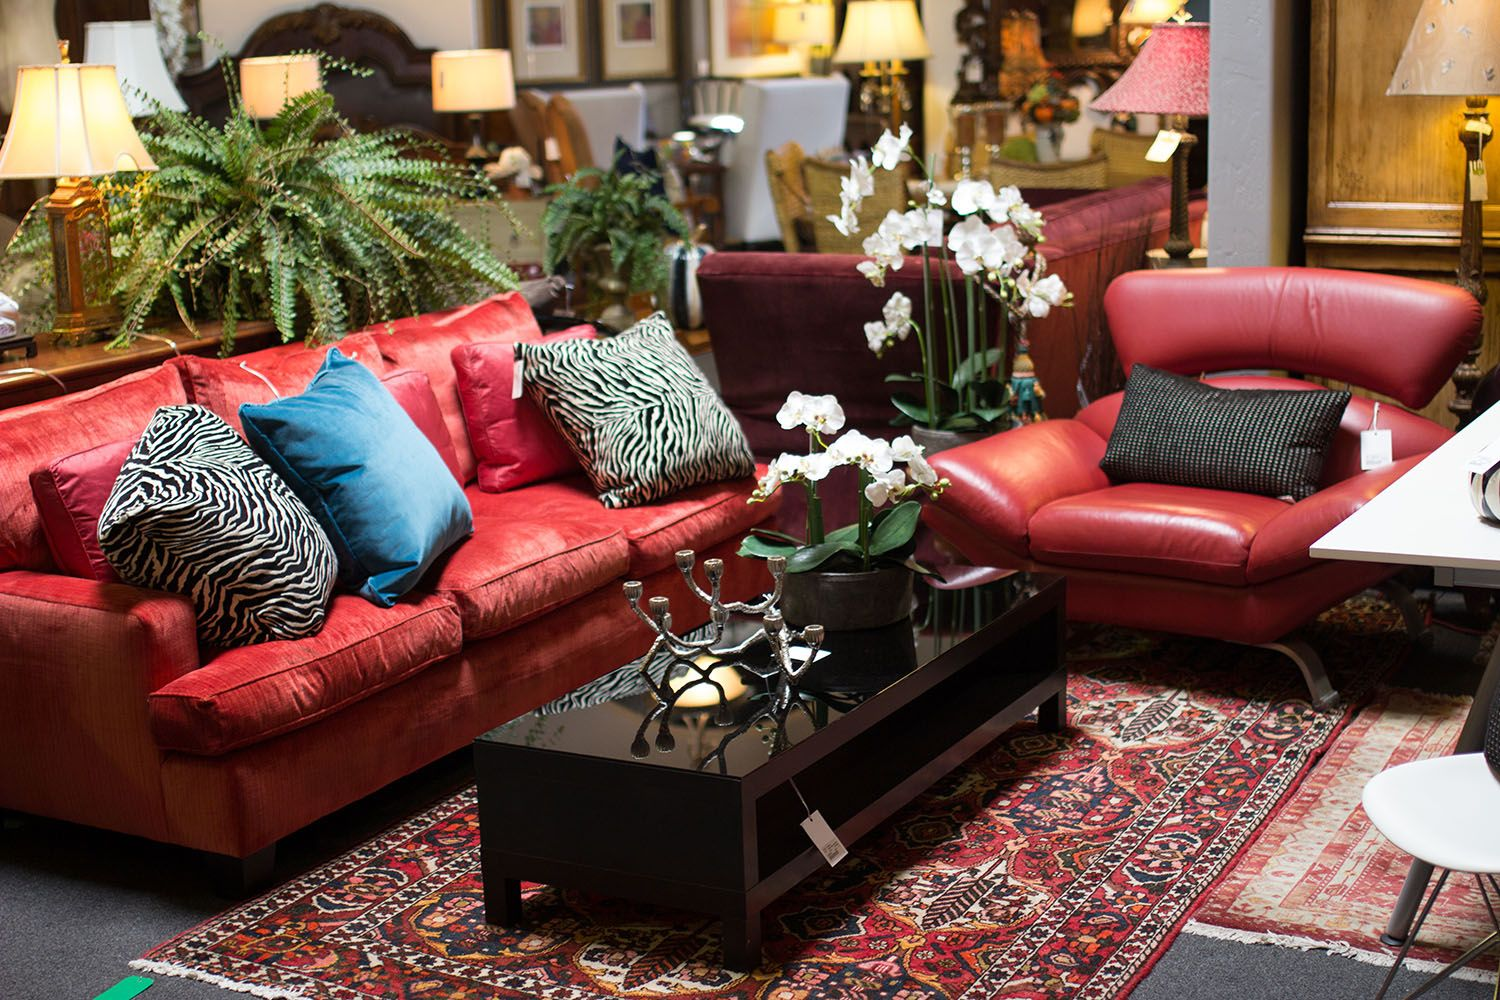 leather sofas scottsdale az l shaped garden sofa covers red couches for the modern home found at avery